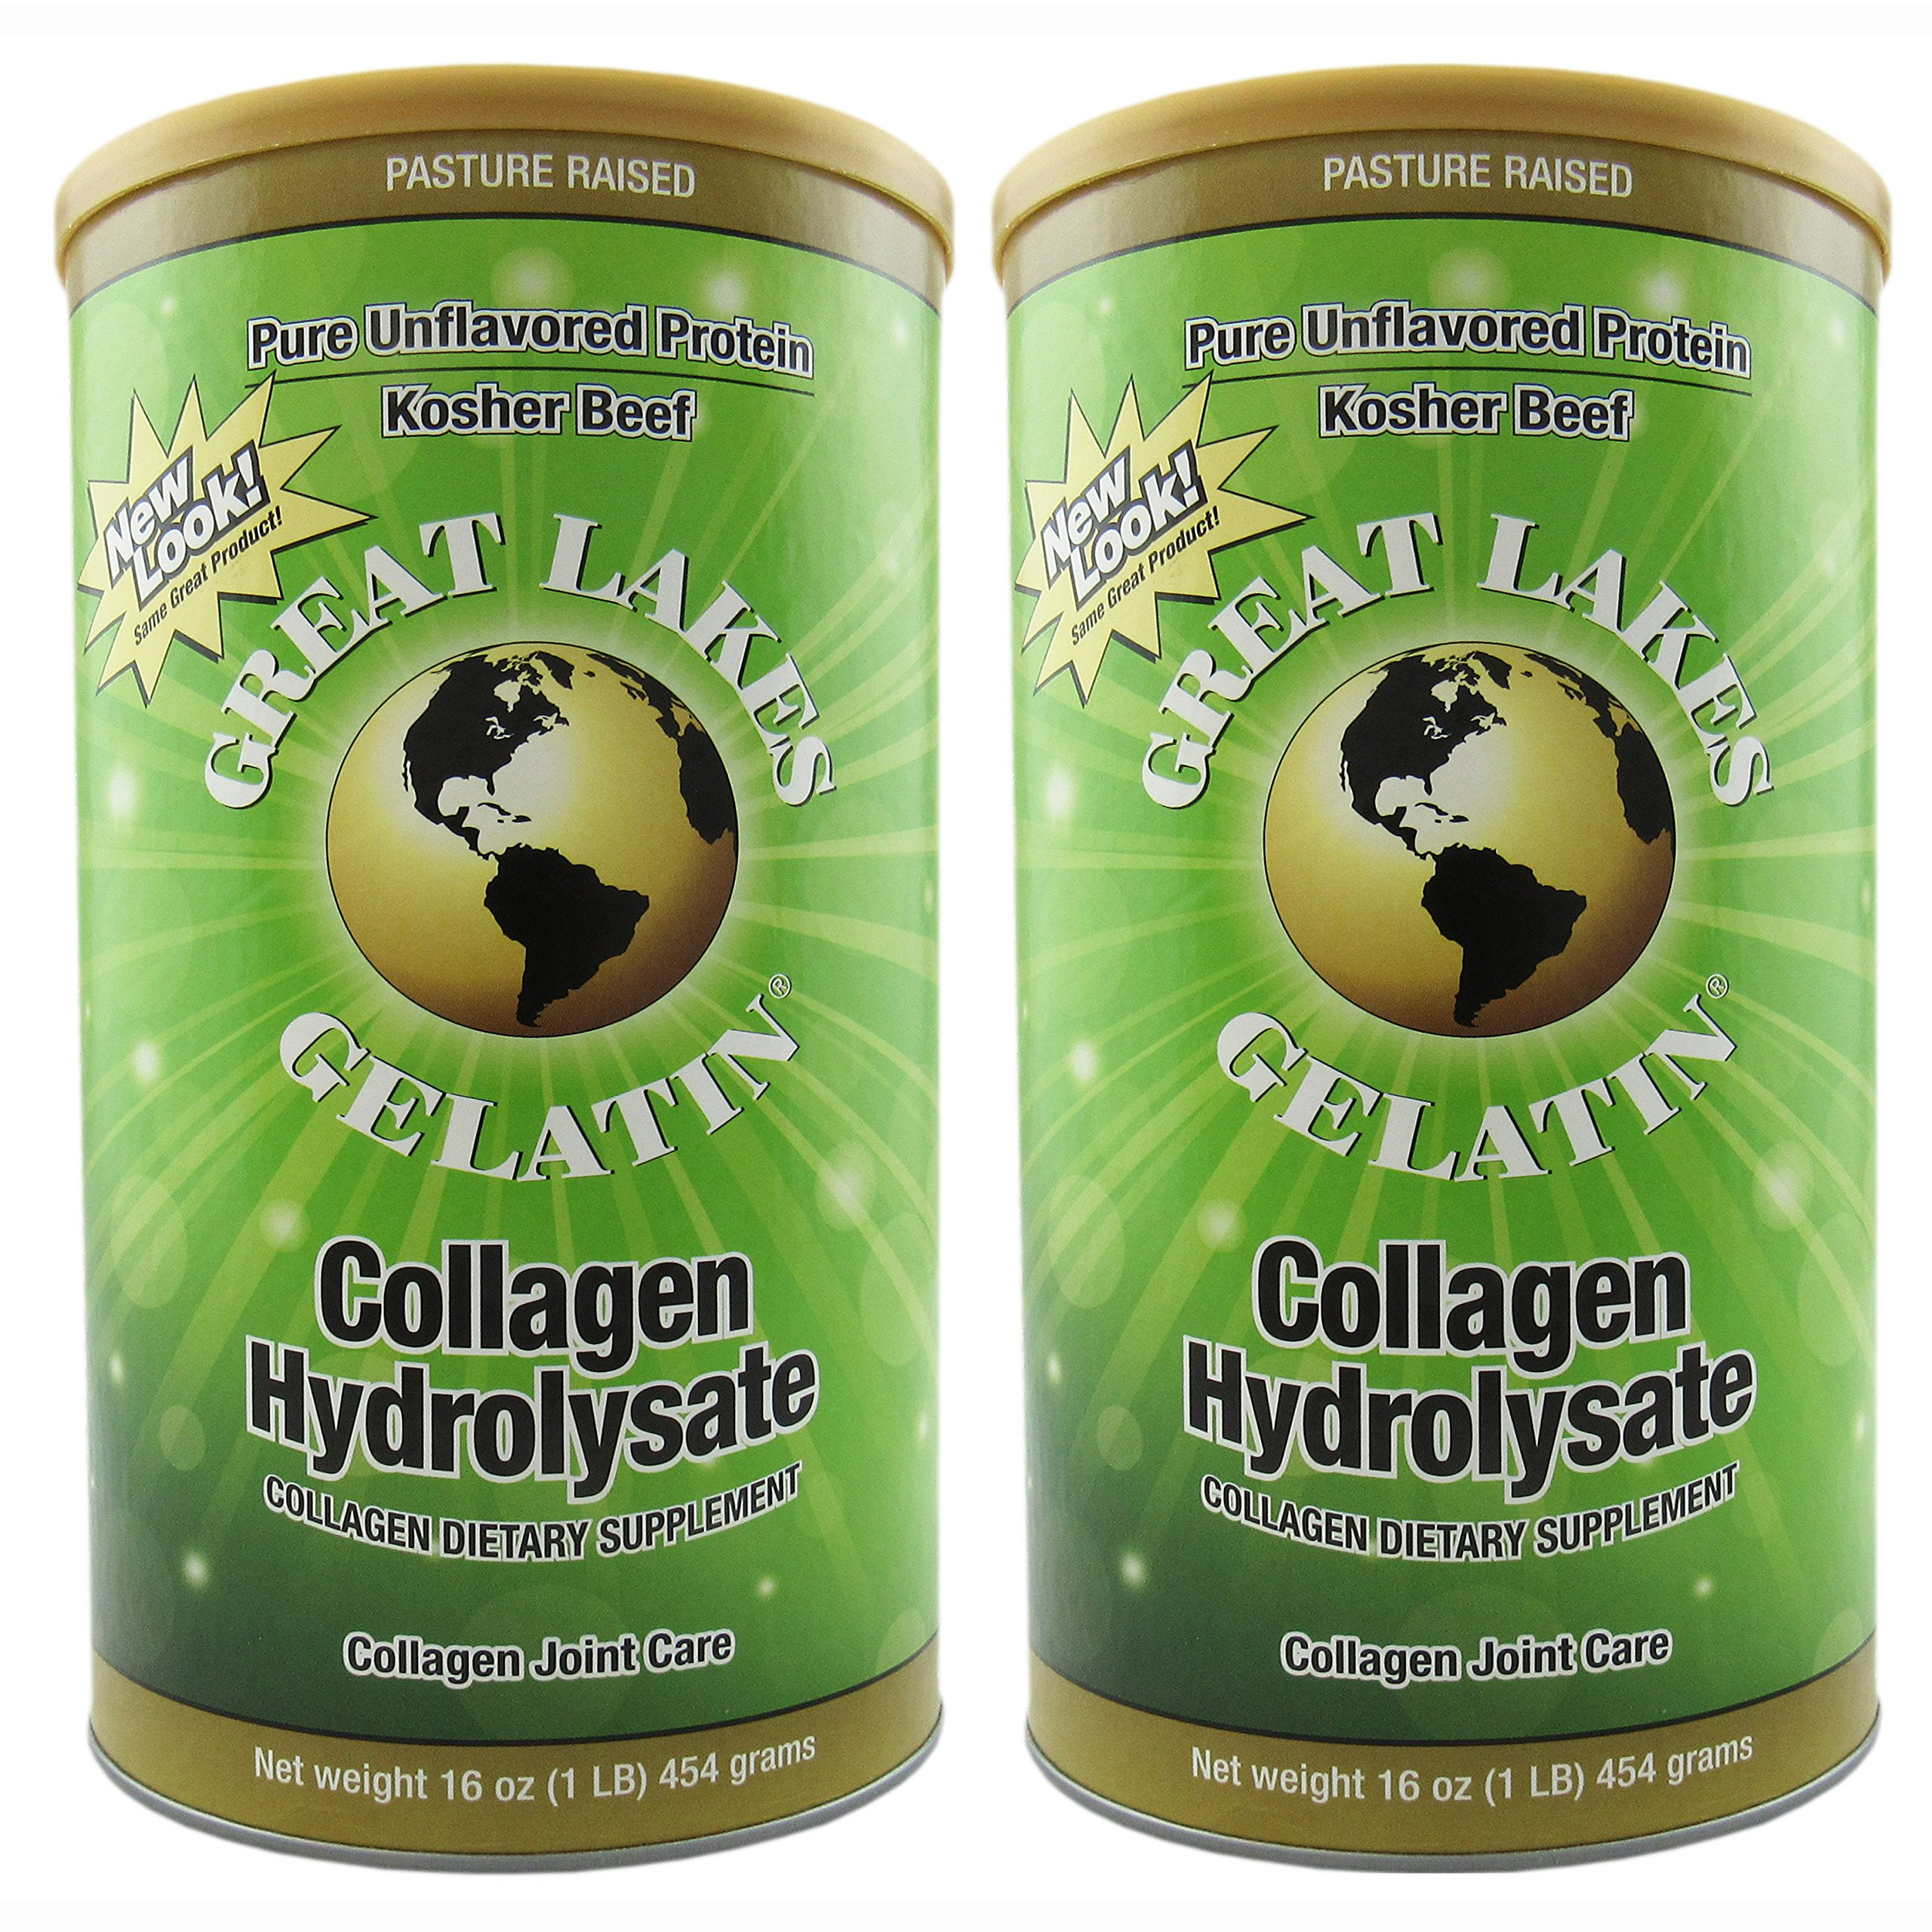 Great Lakes Gelatin Co., Collagen Hydrolysate, Bovine, 16 oz (454 g) - 2pcs by Great Lakes (Image #1)